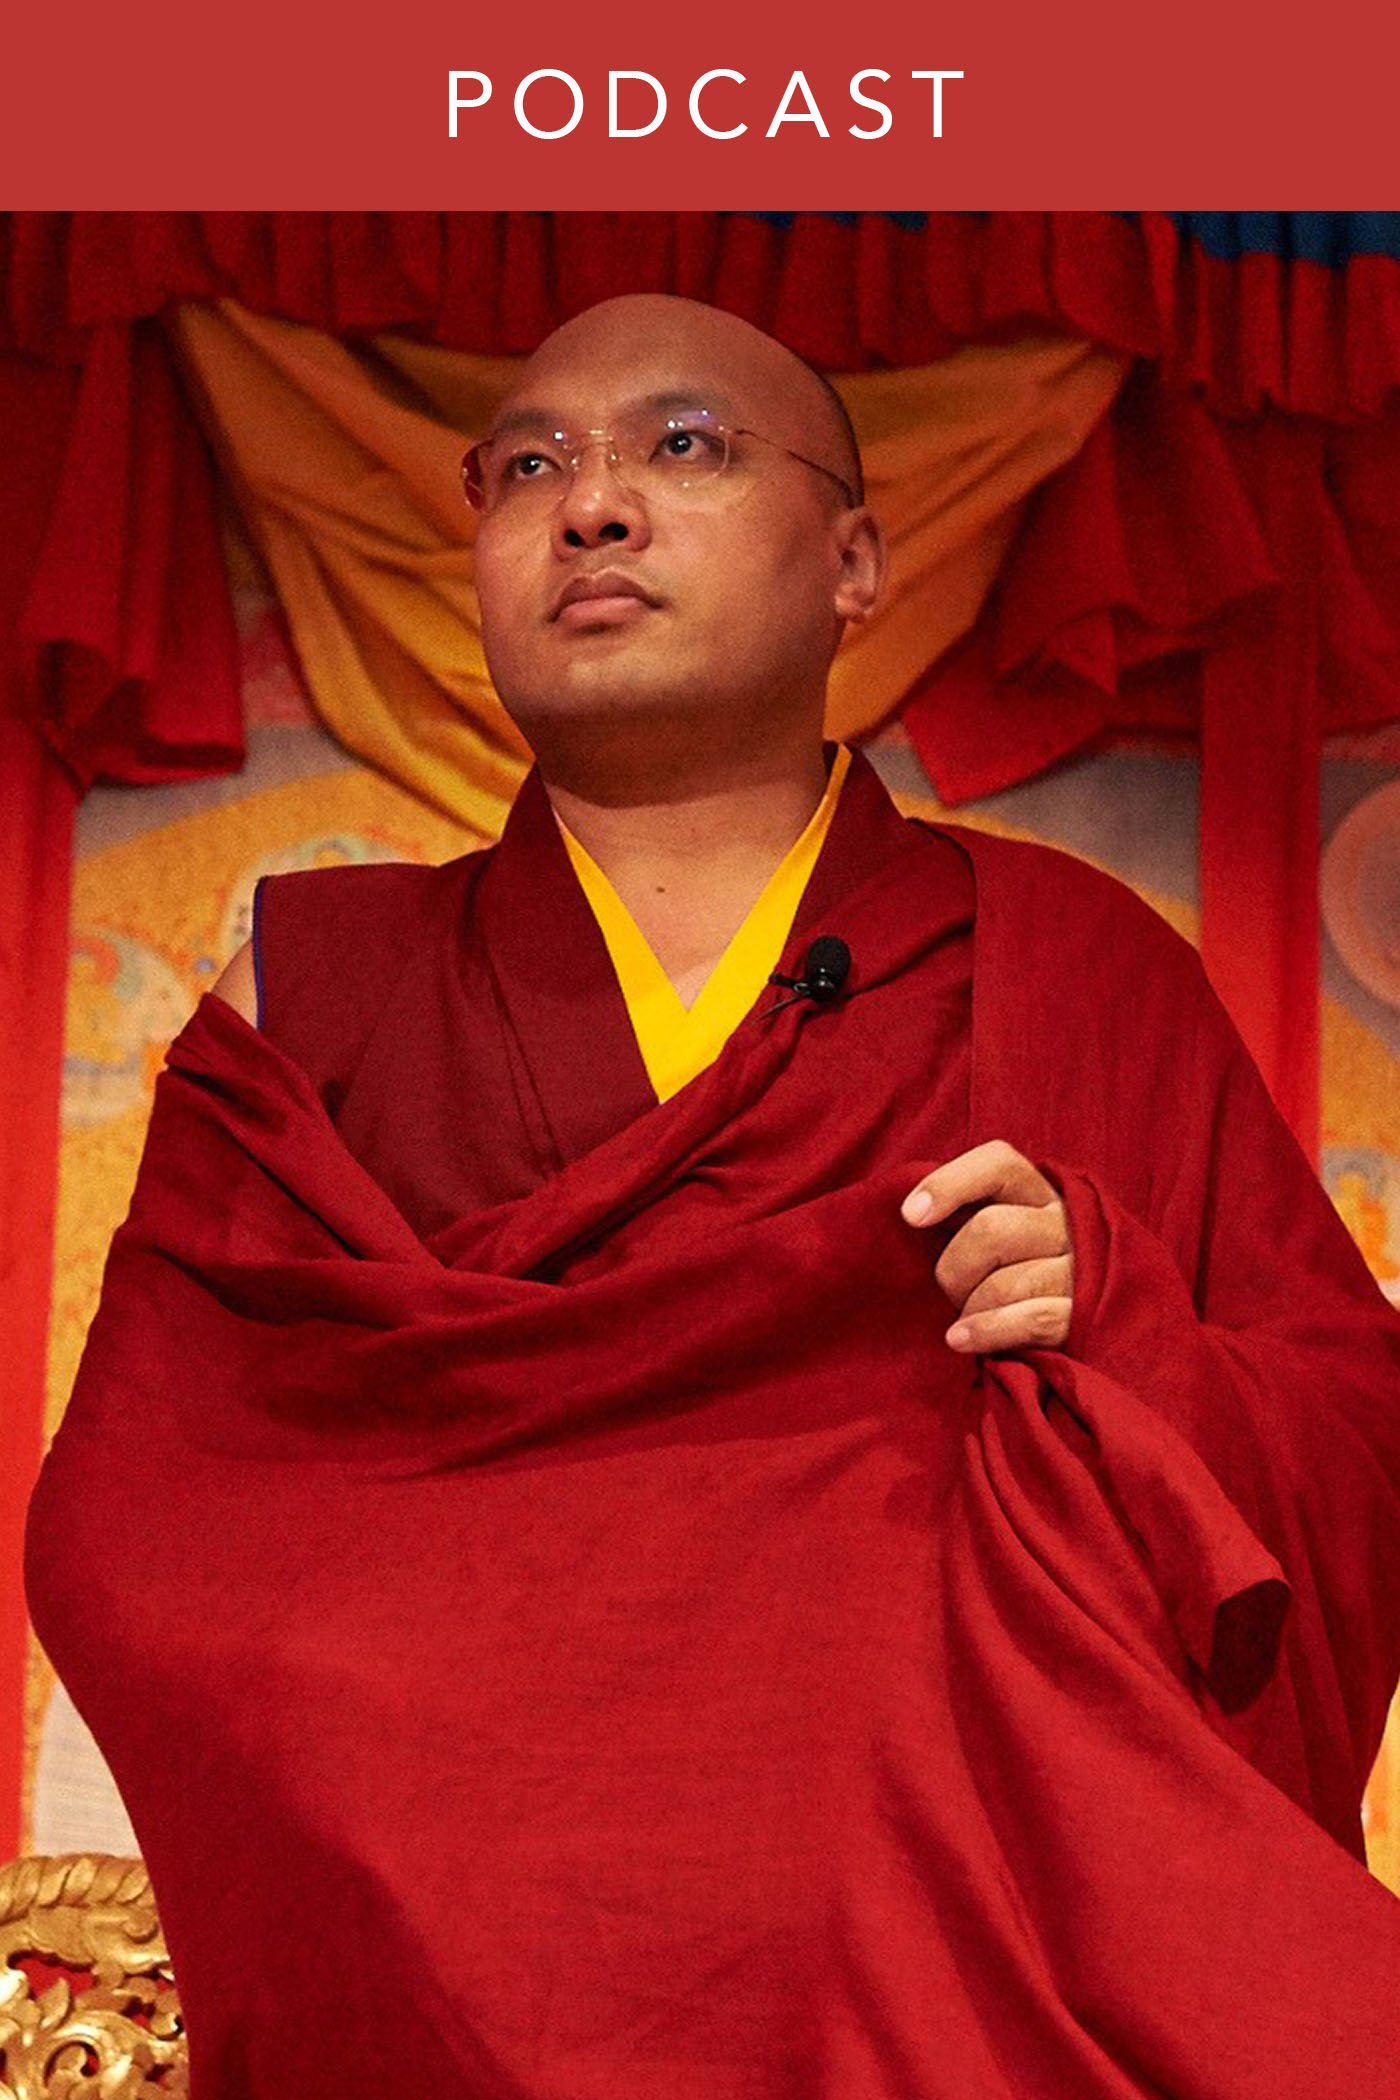 Portrait of His Holiness the Karmapa during a talk he gave. Wisdom Podcast, Buddhist Podcast, Buddhism